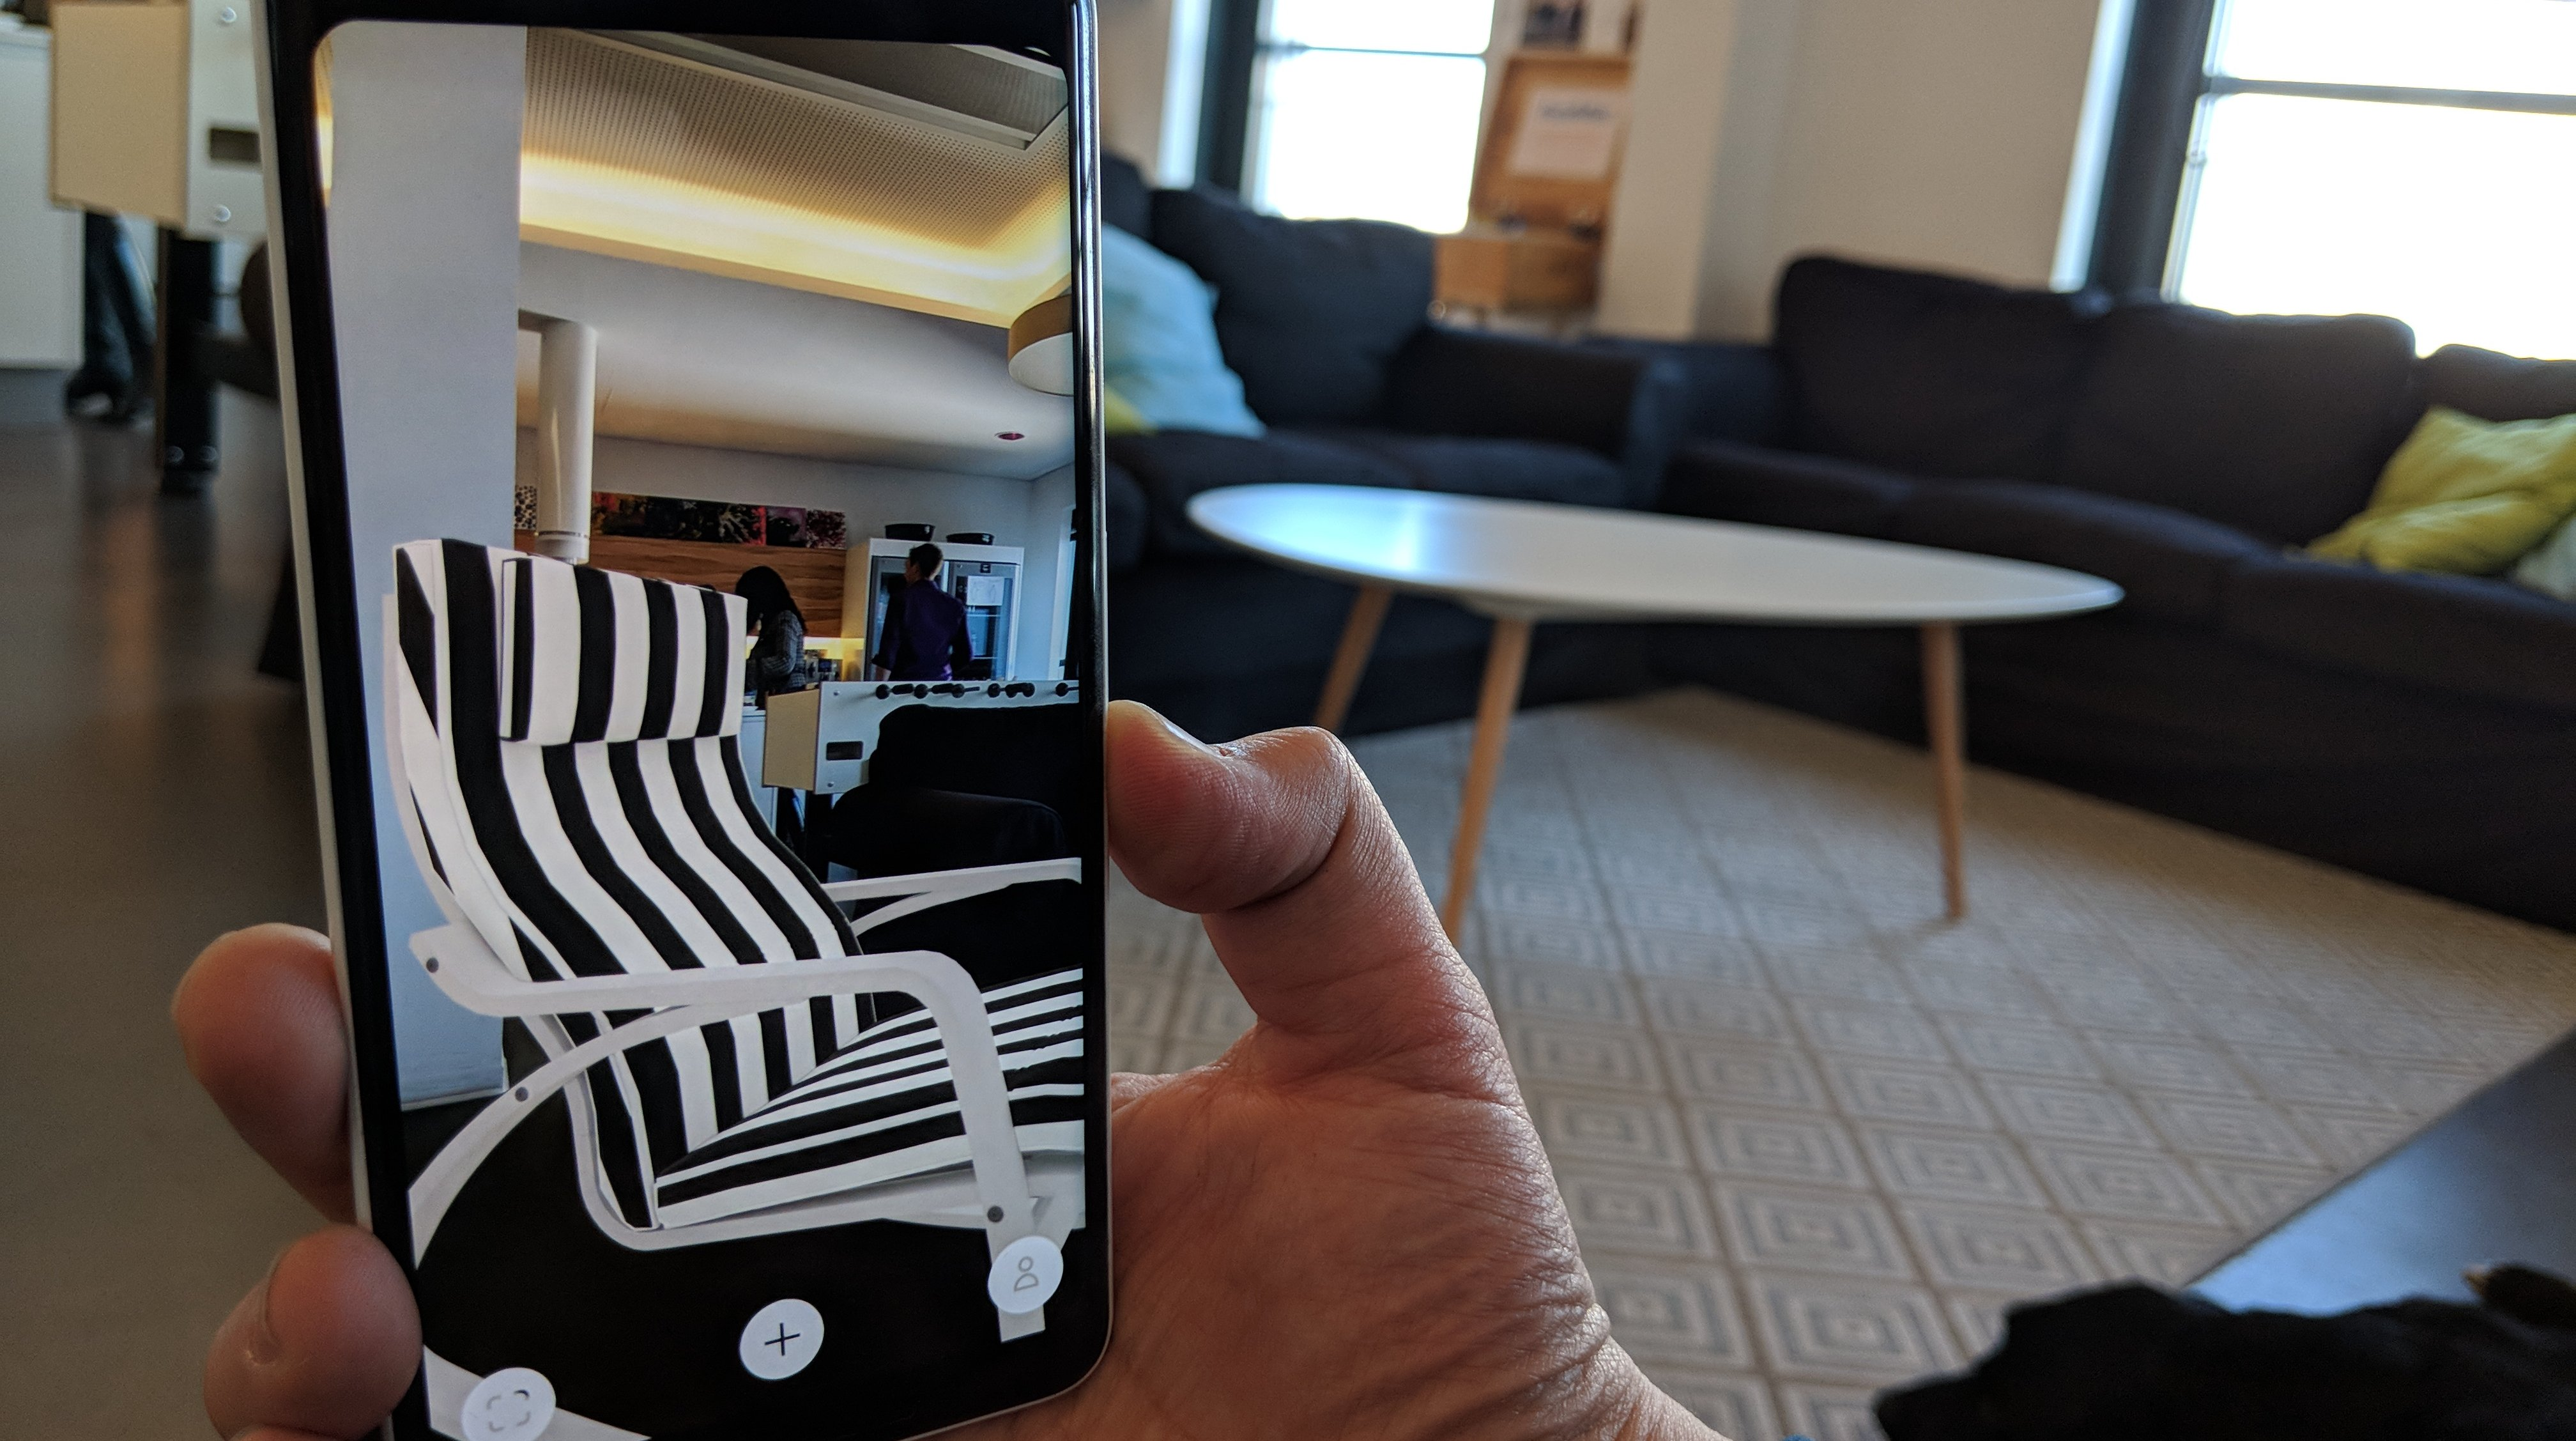 ikea place arcore app verr t welche couch wirklich ins wohnzimmer passt androidpit. Black Bedroom Furniture Sets. Home Design Ideas